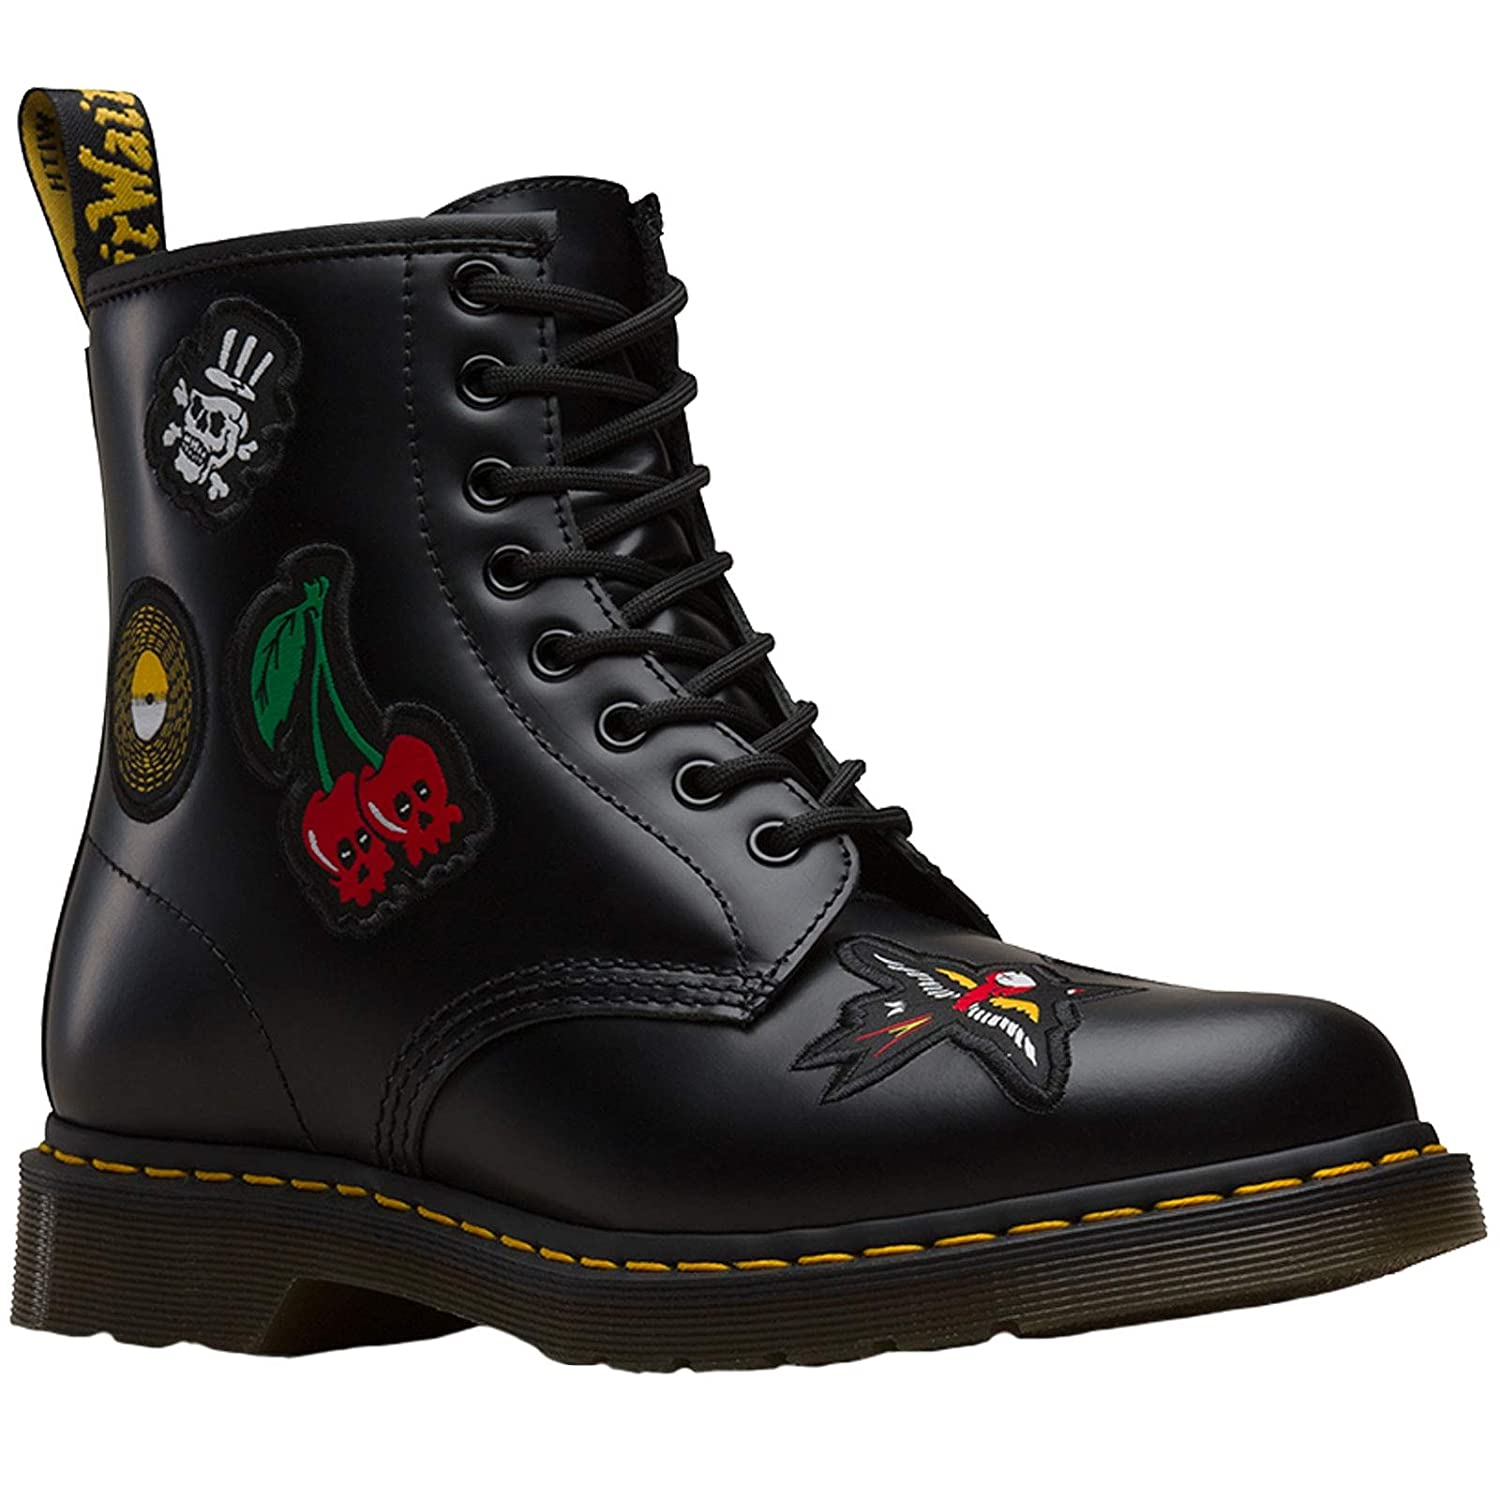 Dr. Martens Unisex 1460 Patch Black Rock & Roll Black Leather 8 Eyelet Boots -UK 10 (EU 45)